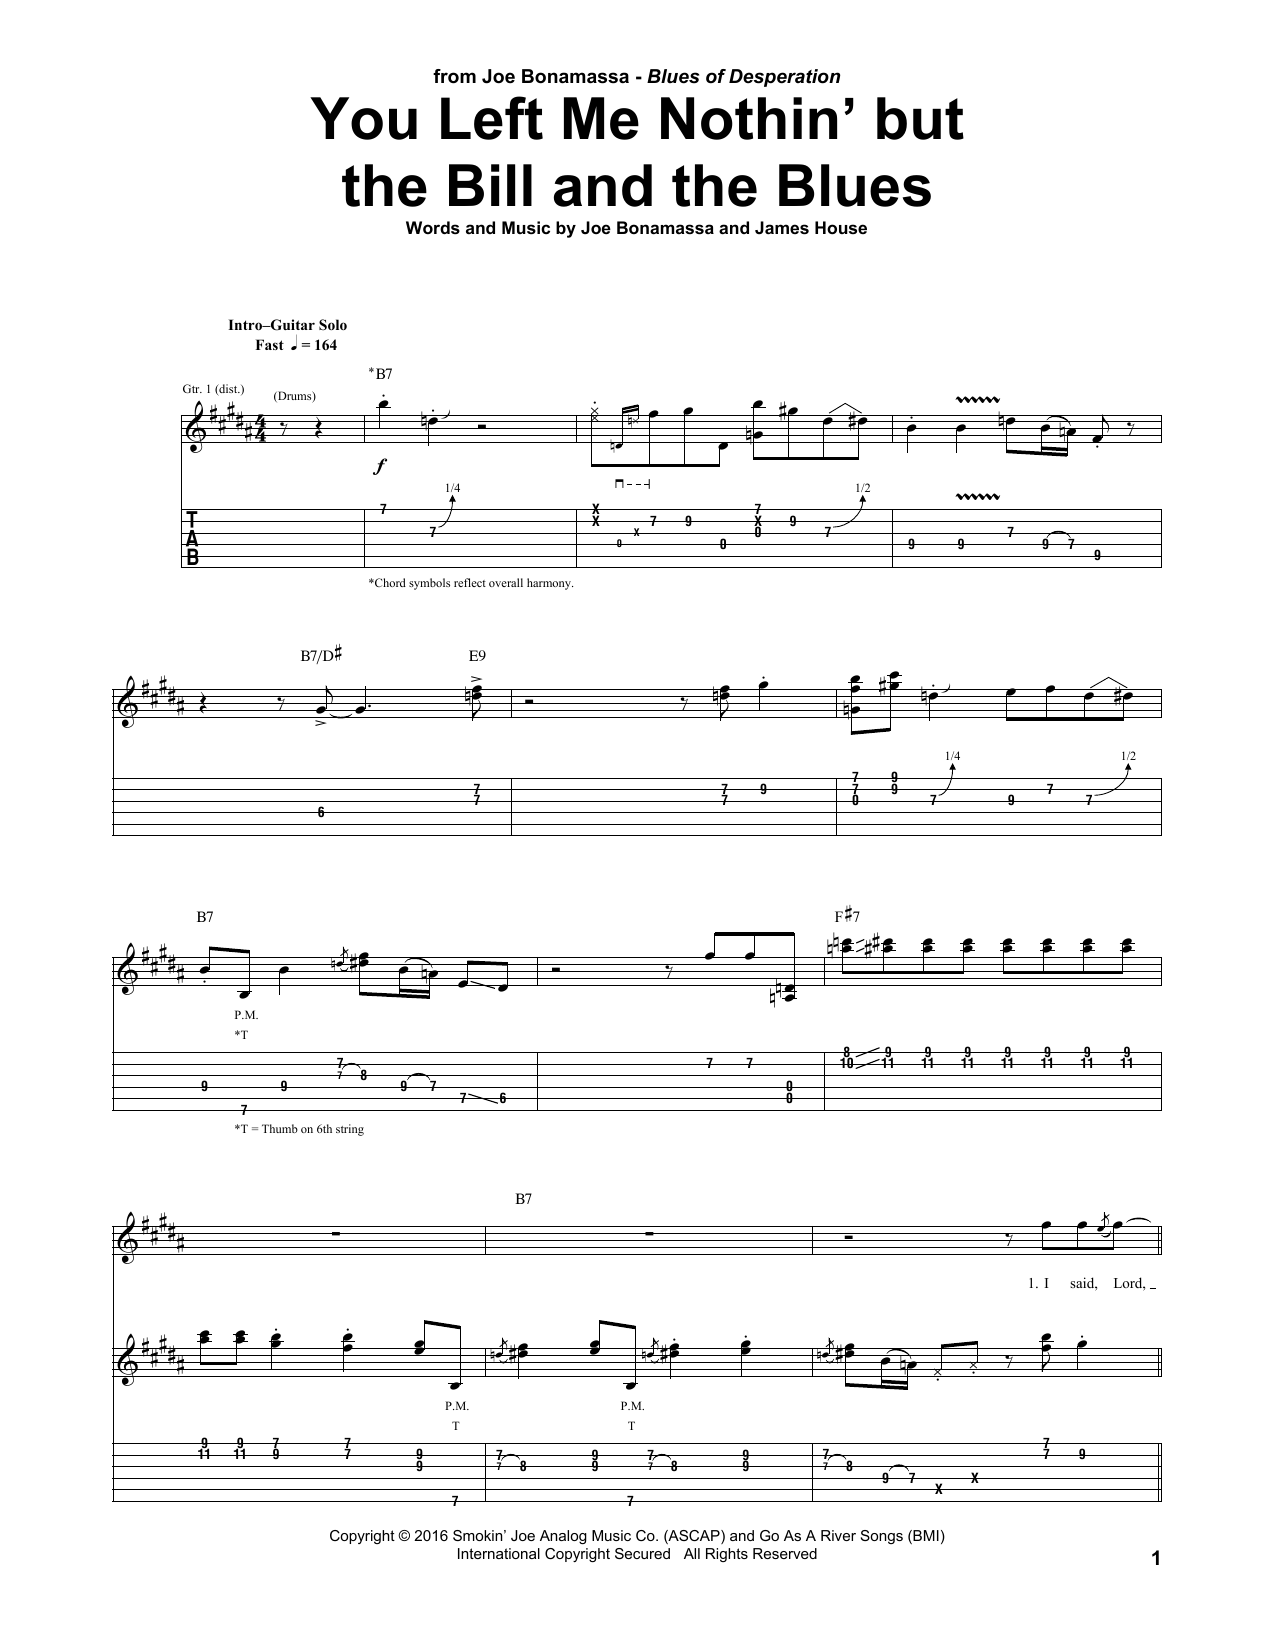 You Left Me Nothin' But The Bill And The Blues Sheet Music